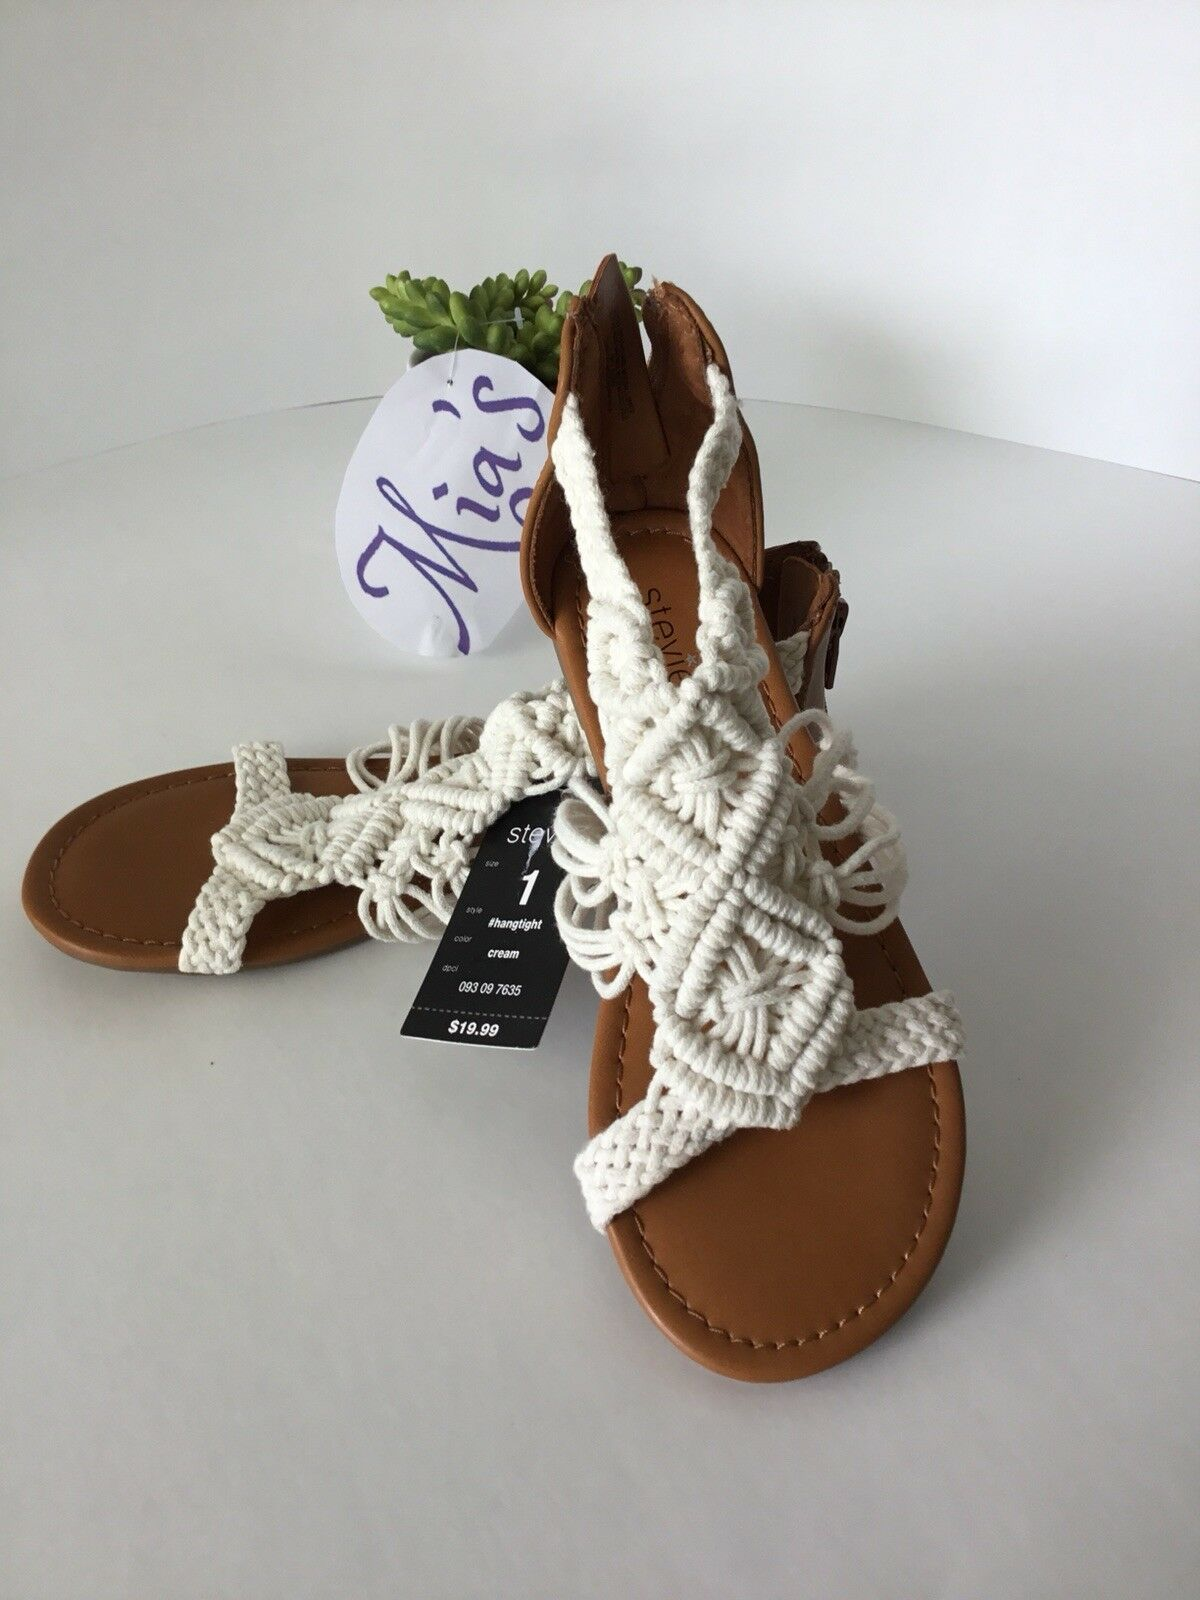 Shoes Stevies For Women Or Gird Size 1 Bordar. Color Beich And Brown, Bordar. 1 aee74d